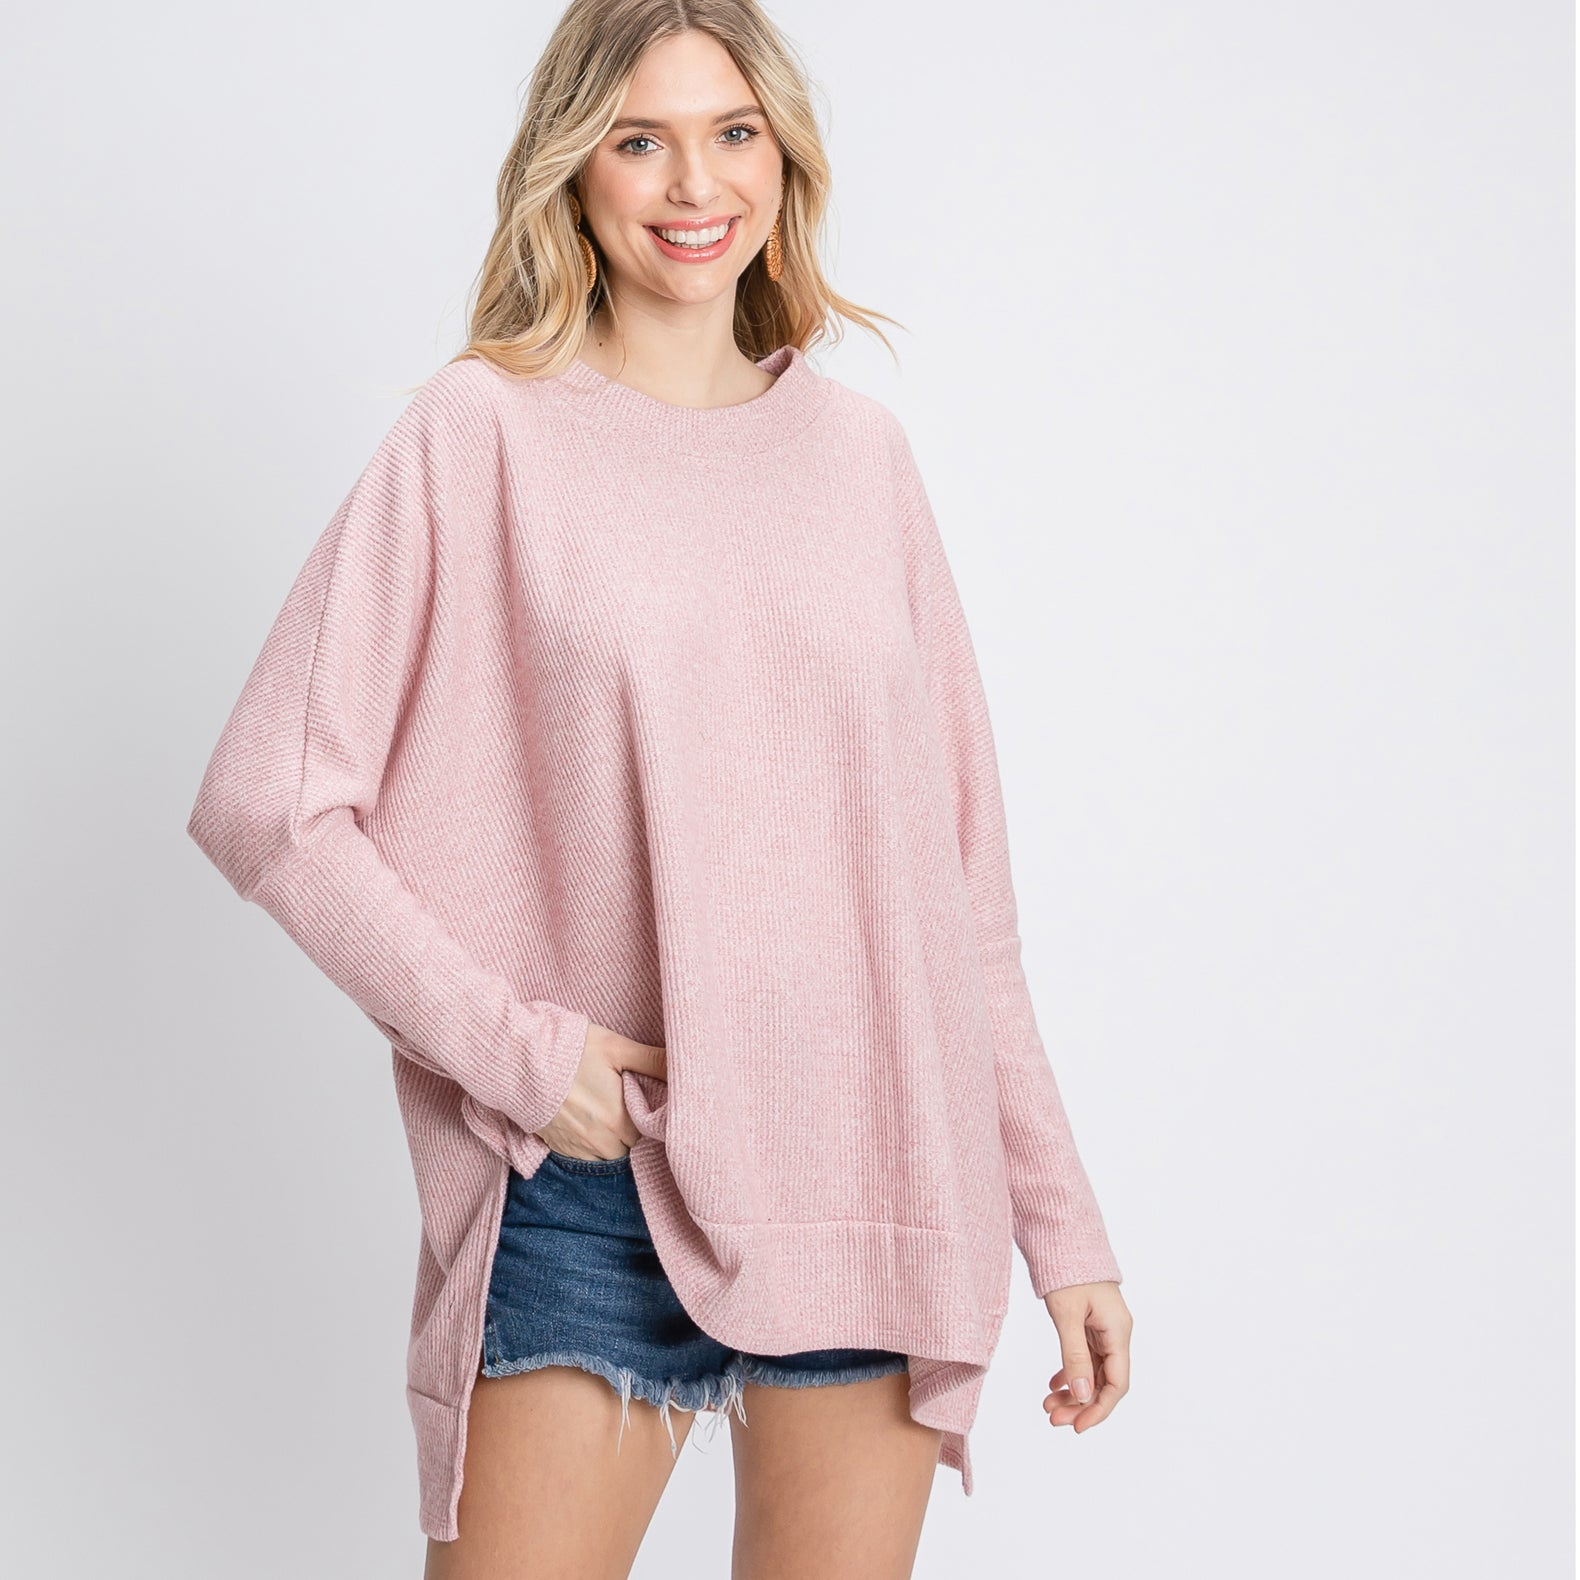 Boxy Comfort Thermal Top